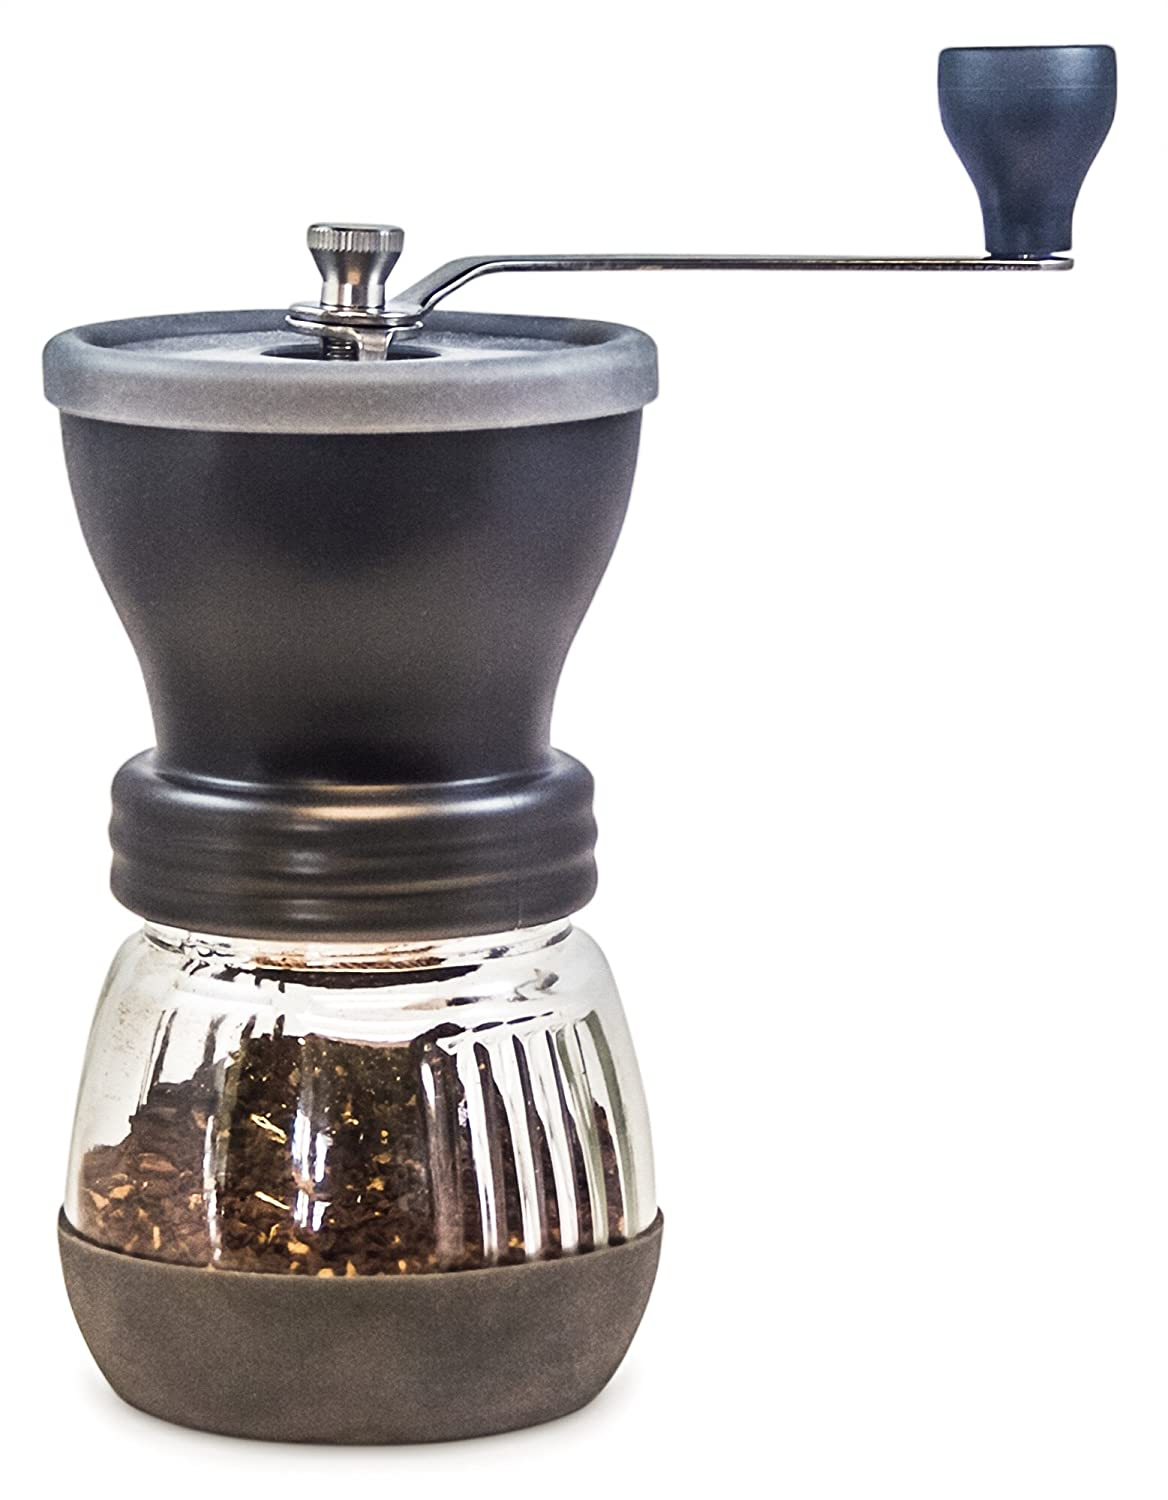 Coffee Grinder from Khaw-Fee - High Quality Adjustable Ceramic Burr - Portable - Consistent Grind for Whole Coffee Beans- Perfect for Pour Over Coffee, Drip Brew, Percolator, French Press, Espresso HG1B